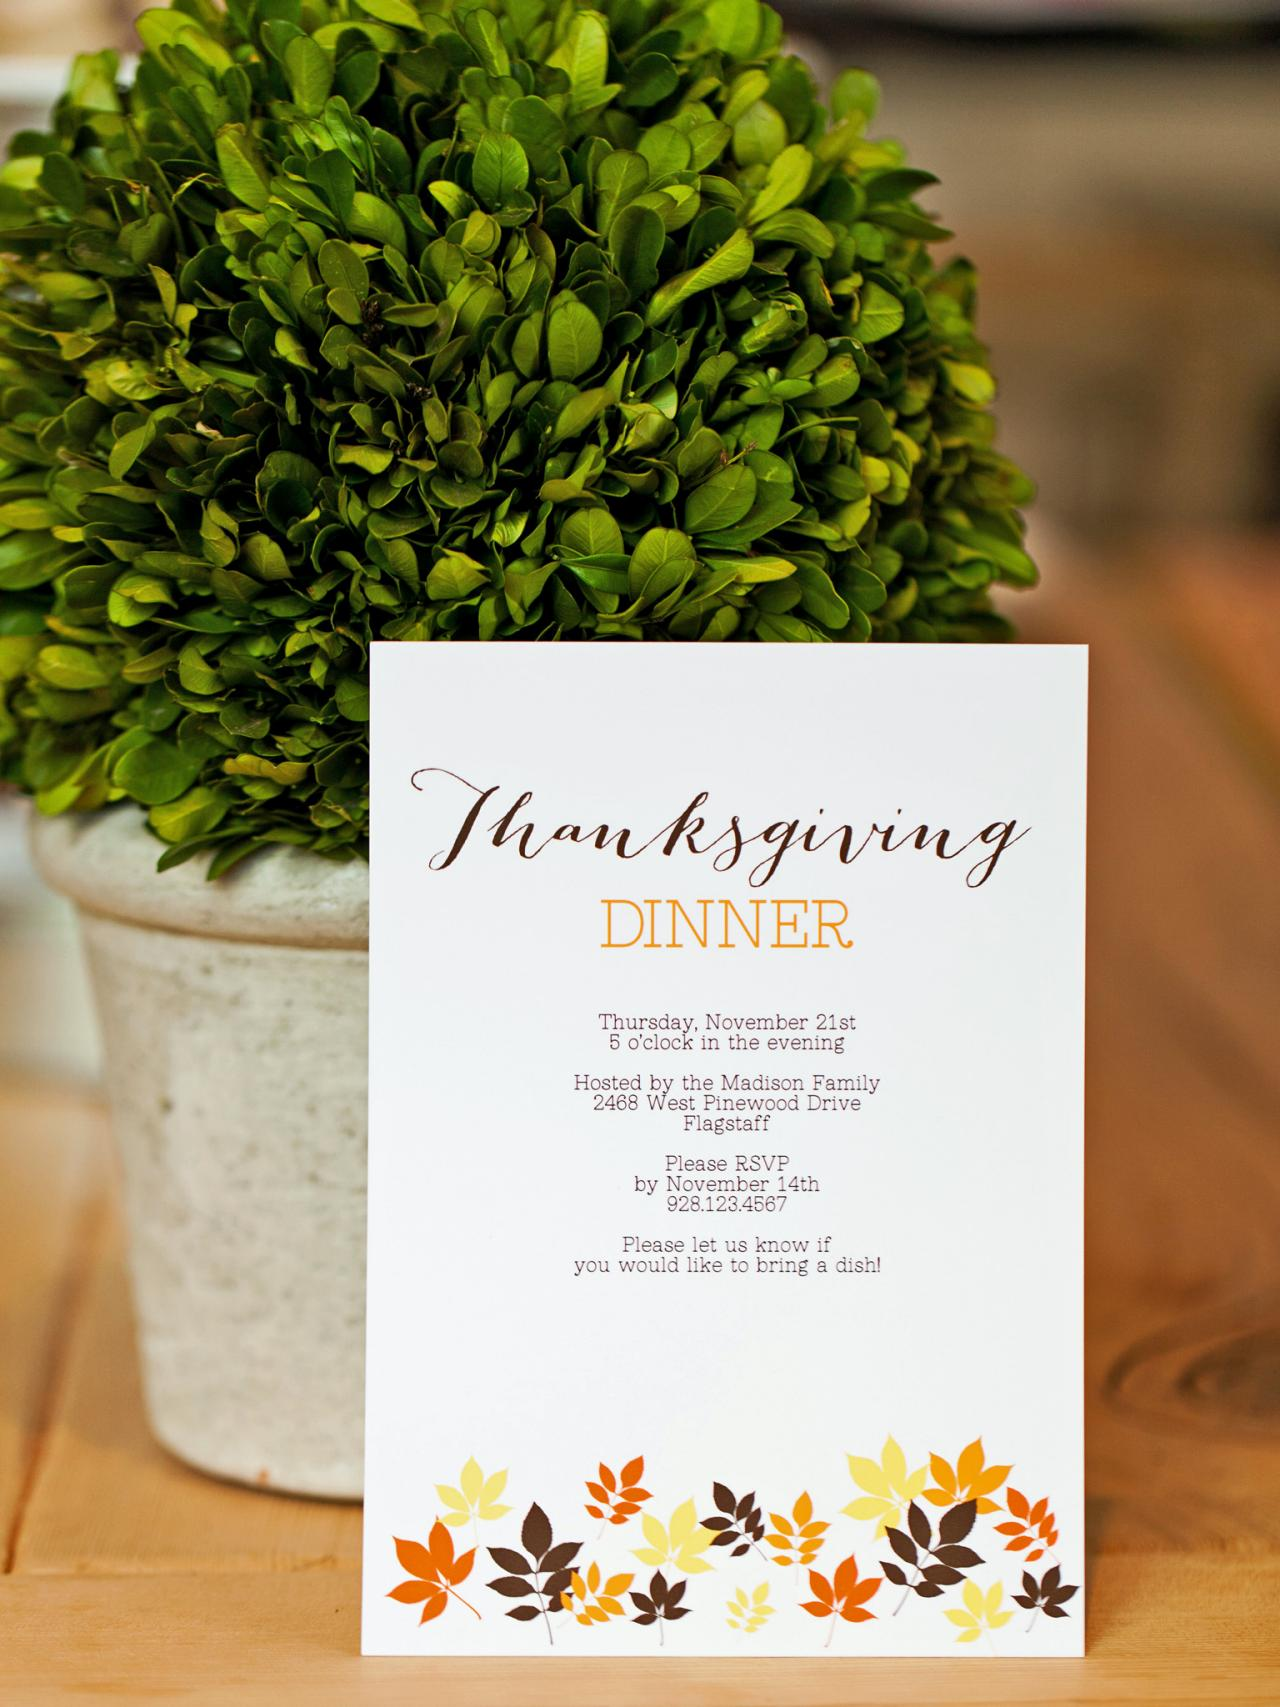 Free Thanksgiving Templates Gift Tags Cards Crafts More HGTV - Thanksgiving party invitation templates